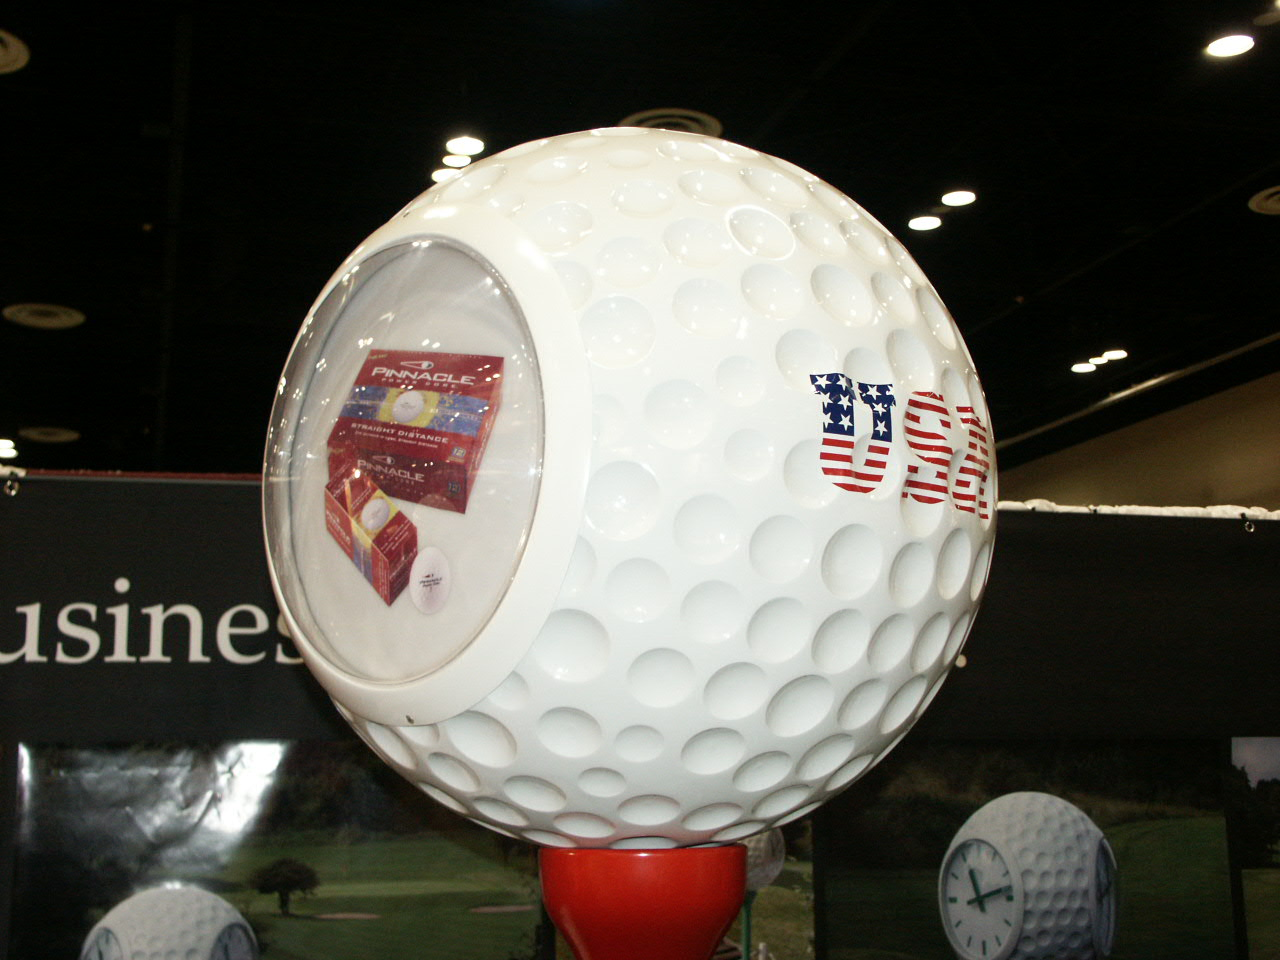 6ft golf ball with signage